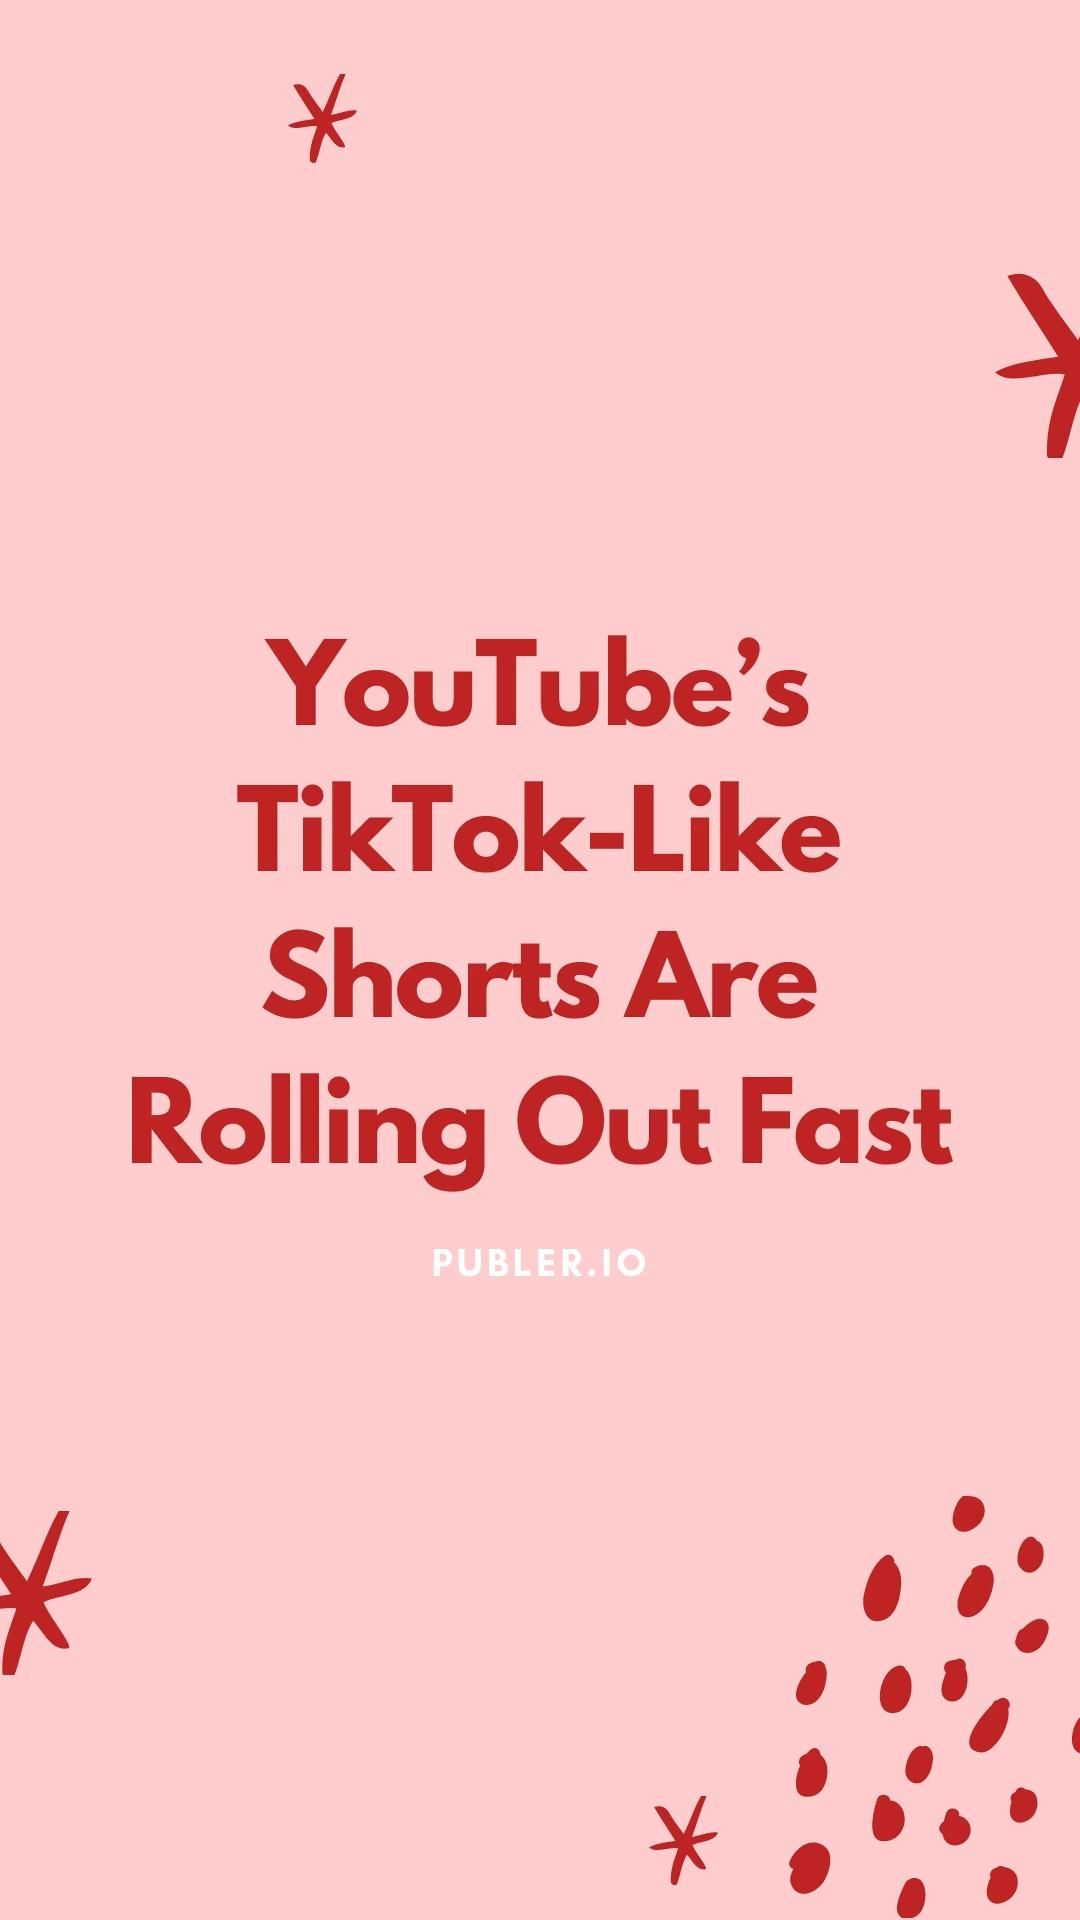 Youtube S Tiktok Like Shorts Are Rolling Out Fast Video In 2021 Marketing Plan Small Business Marketing Content Marketing